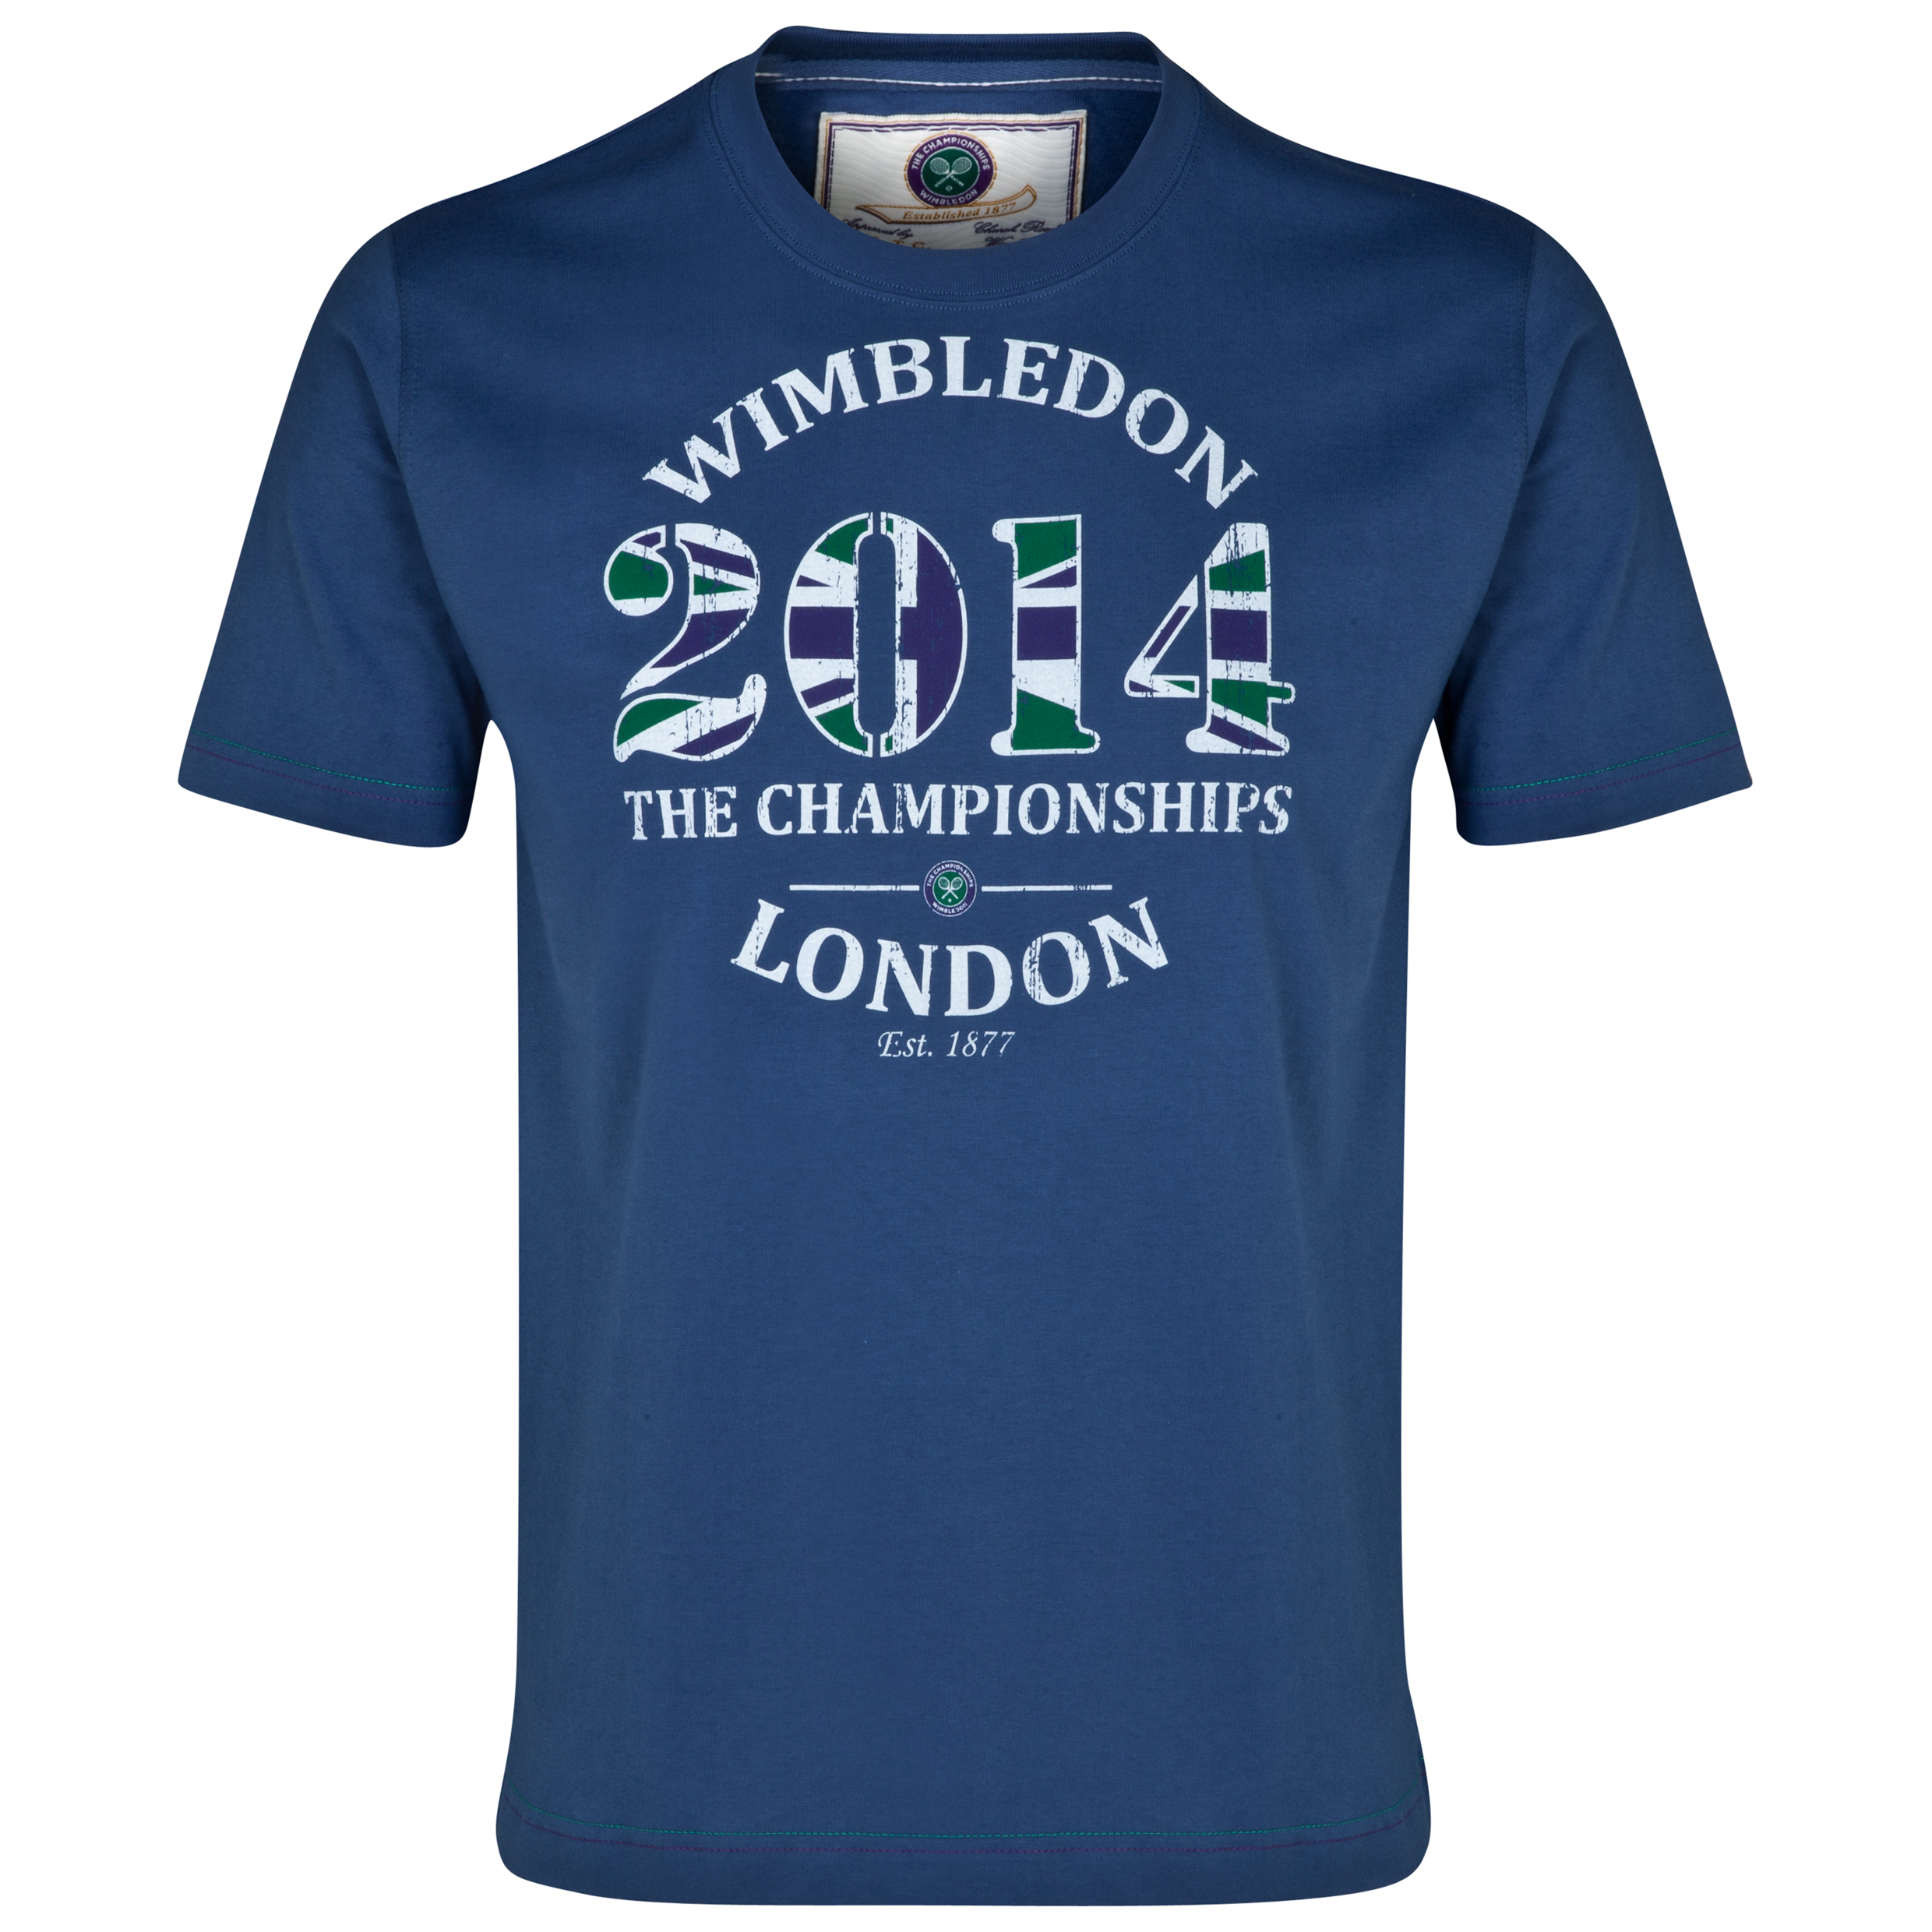 Wimbledon 2014 Dated T-Shirt Blue